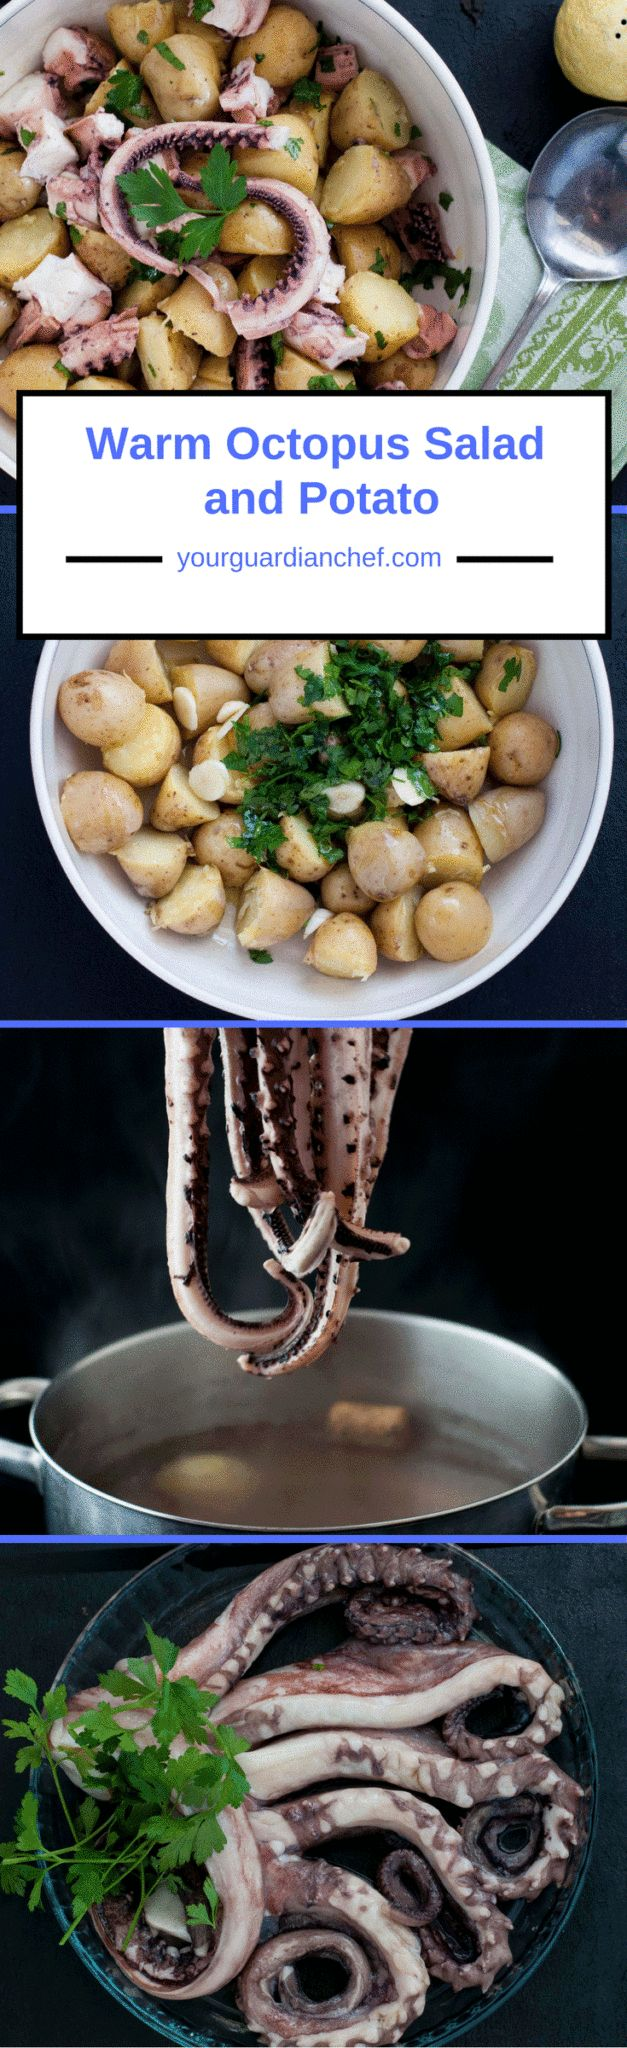 Warm octopus salad with warm potatoes is a very common starter served at restaurants here in the Cote d'Azur. It is very easy to male at home - Your Guardian Chef #octopus #salad #seafood #starter #Italian